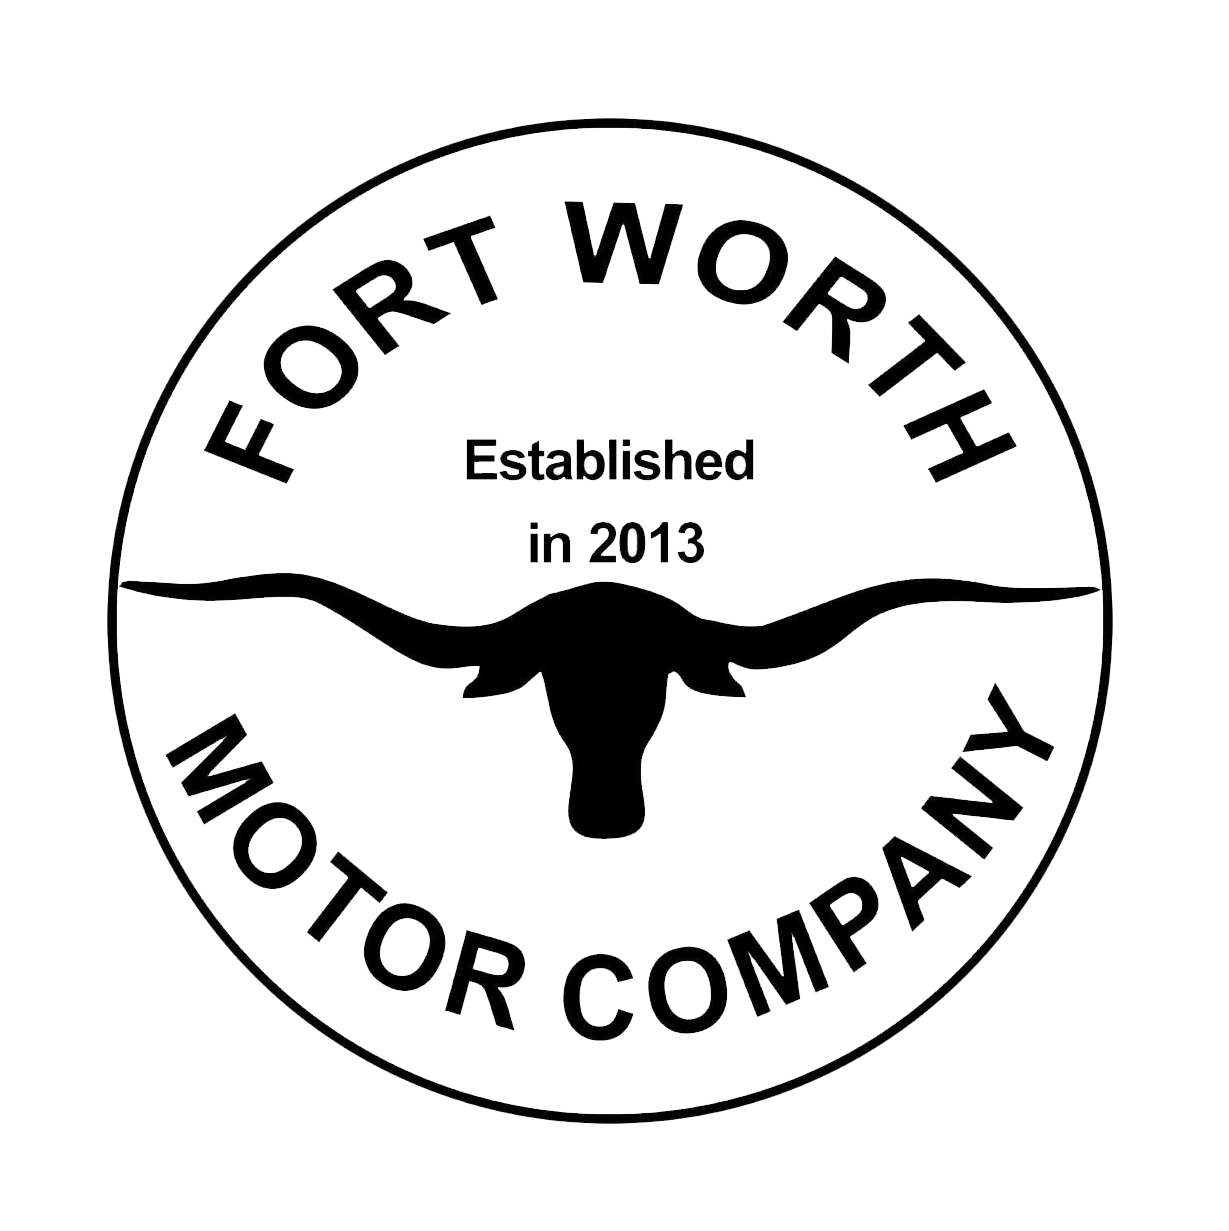 Fort Worth Motor Company